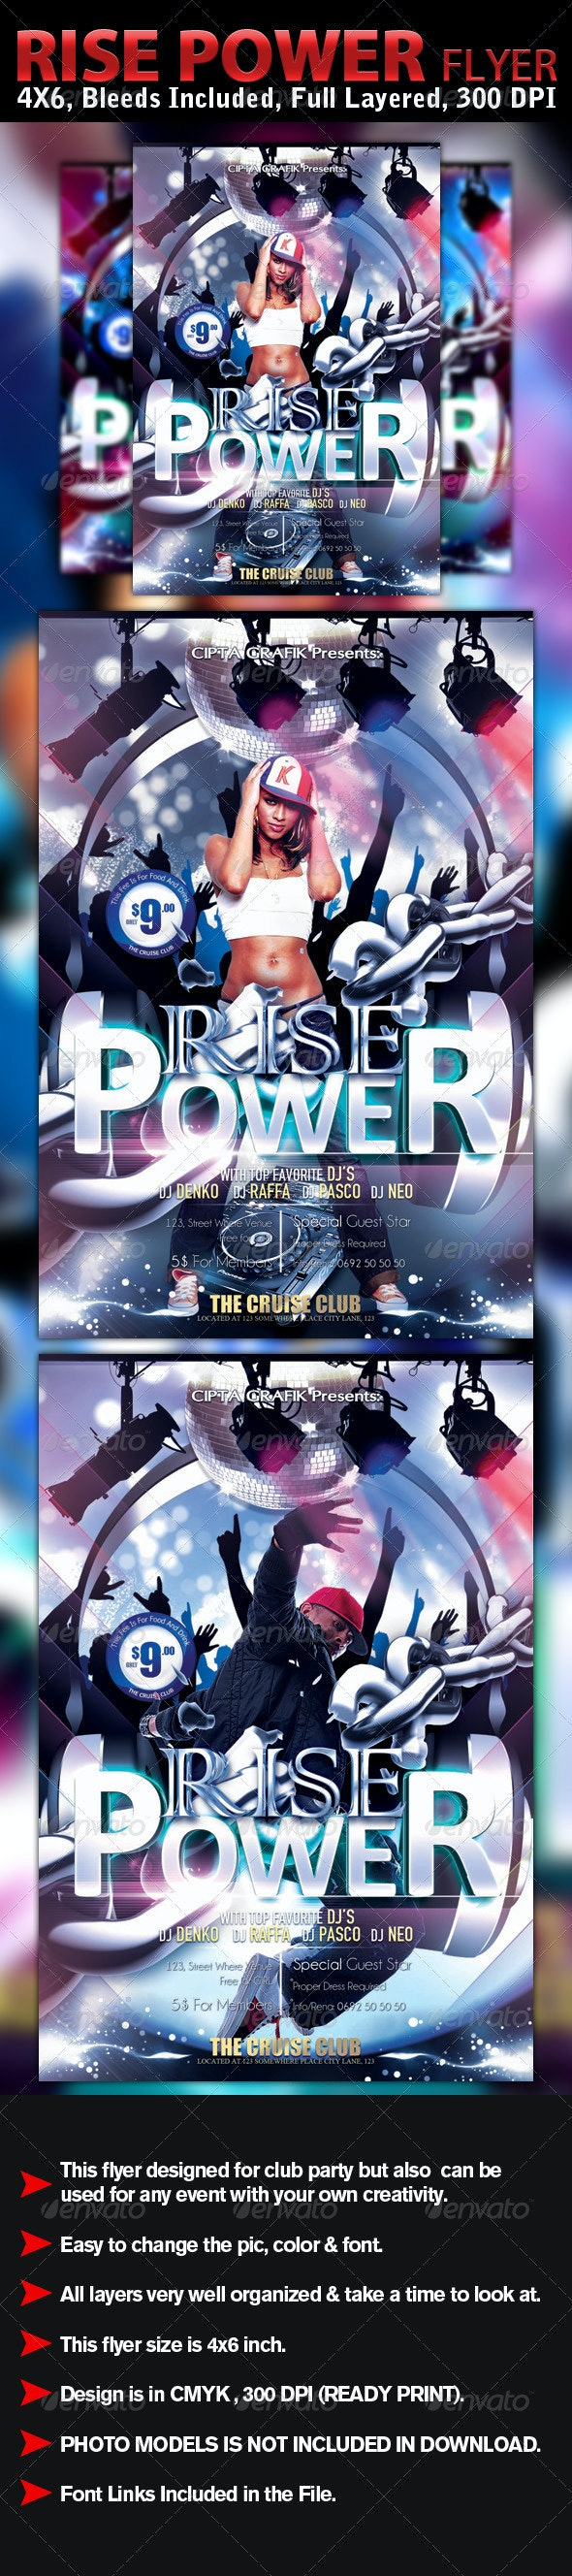 Rise Power Flyer Template - Clubs & Parties Events